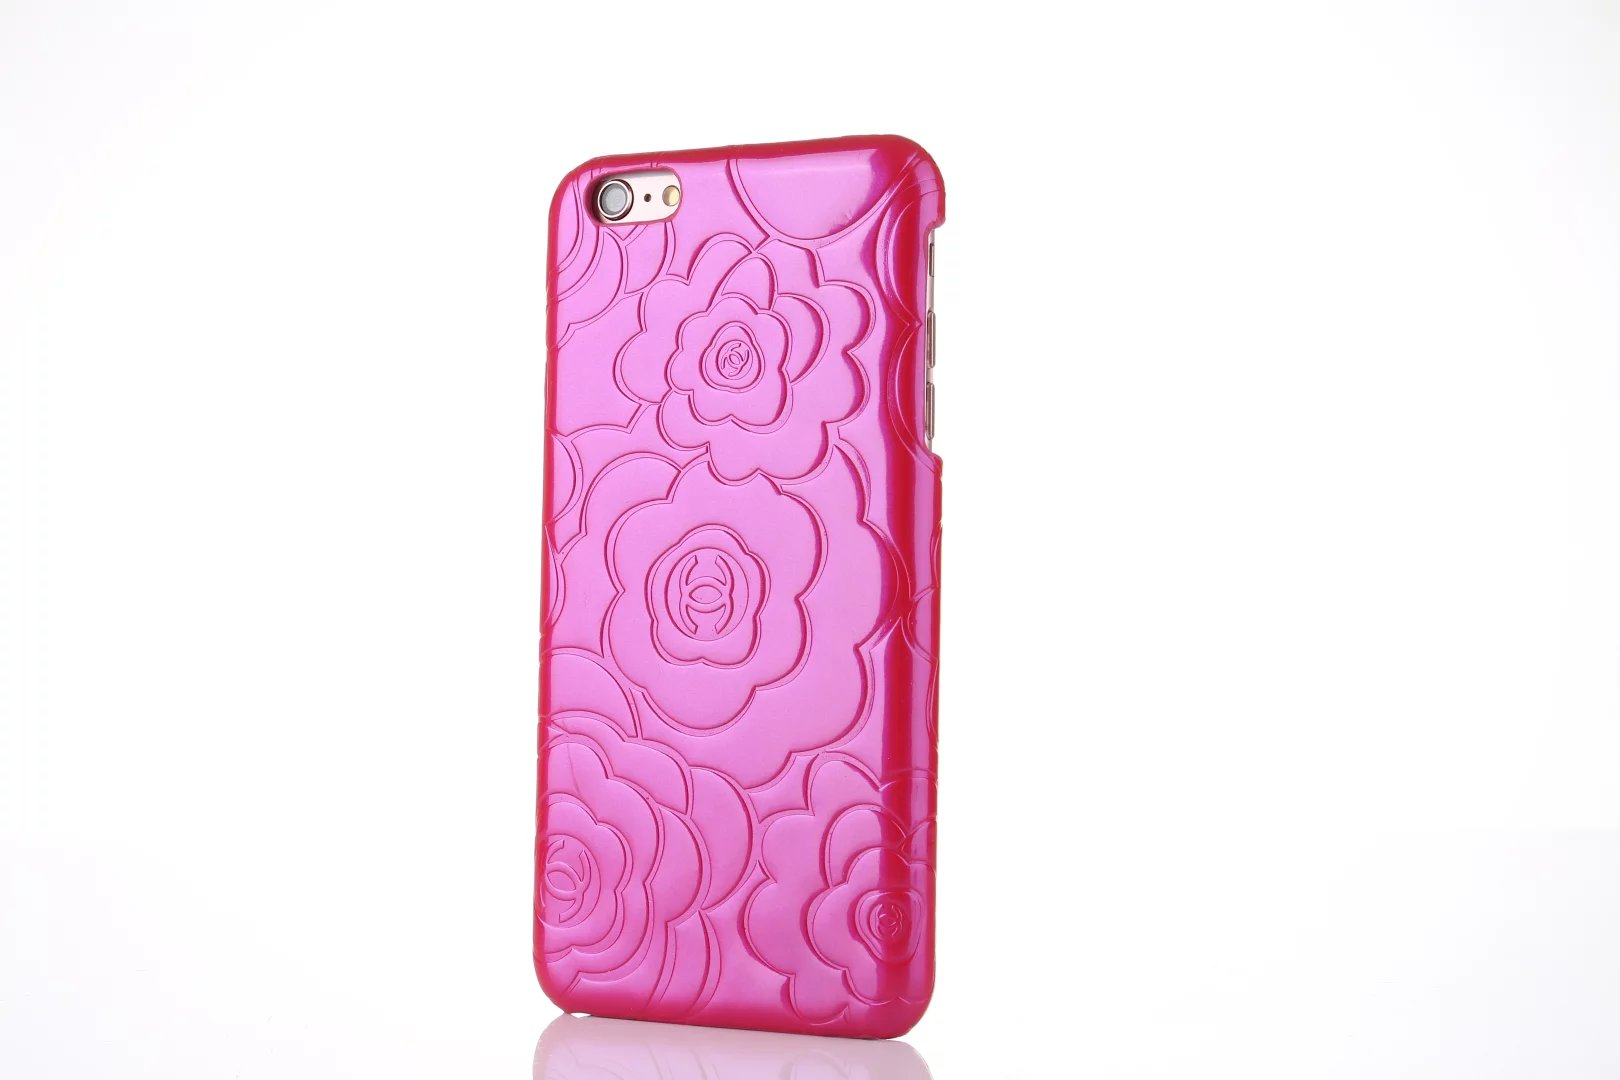 apple iphone 6s Plus cases iphone 6s Plus cool covers fashion iphone6s plus case new iphone 6s covers tory burch ipad case logitech case iphone 6s cases in stores telephone iphone case phone cases 6s